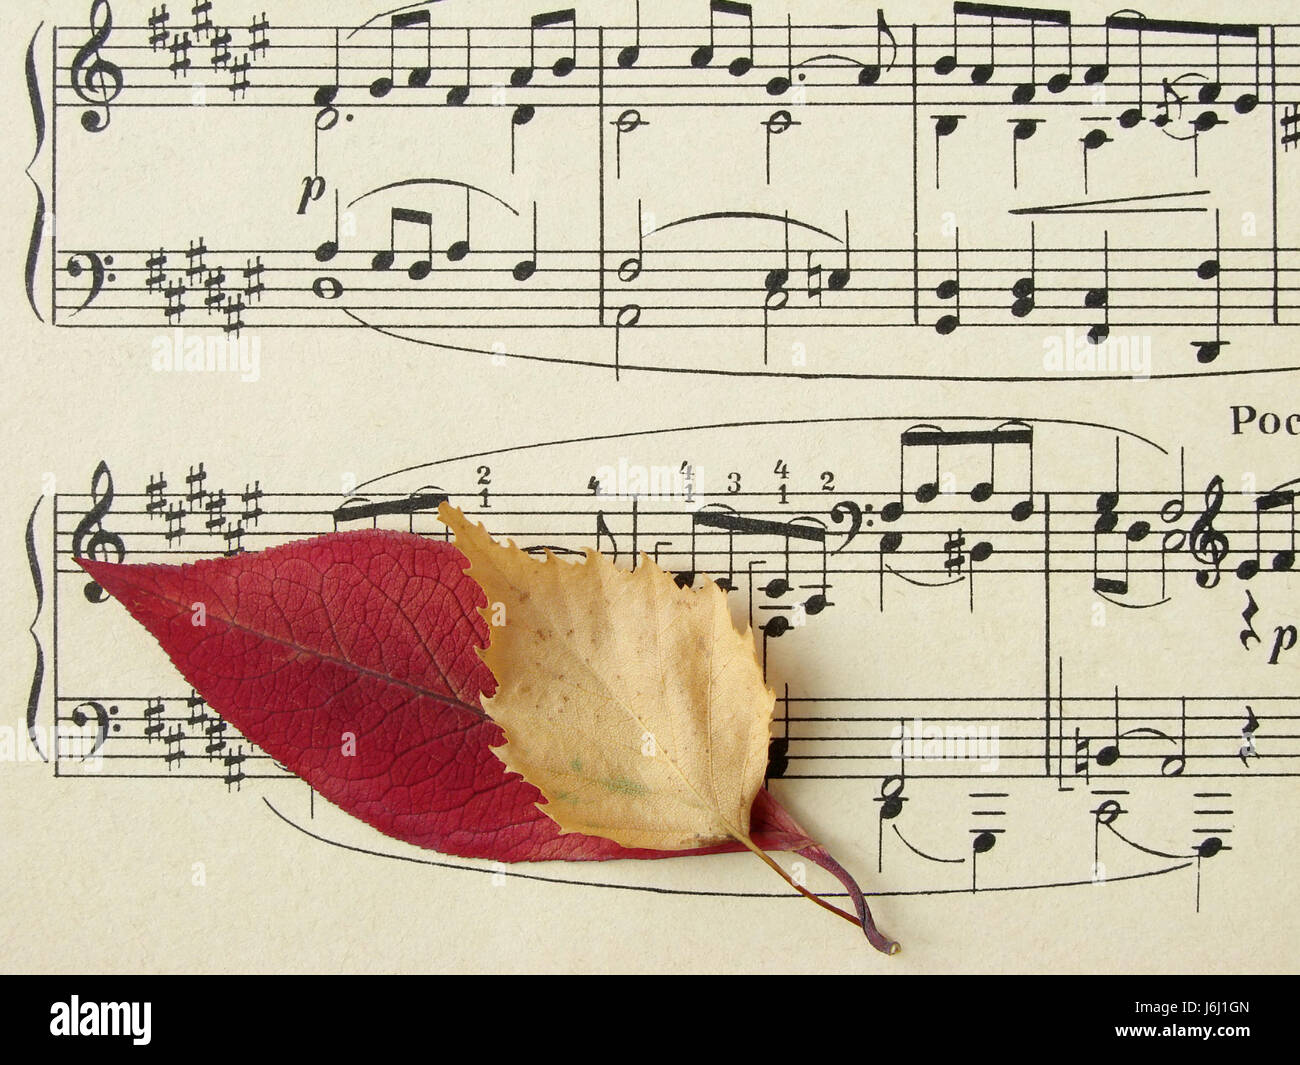 Musical stave stock photos musical stave stock images for The craft of musical composition